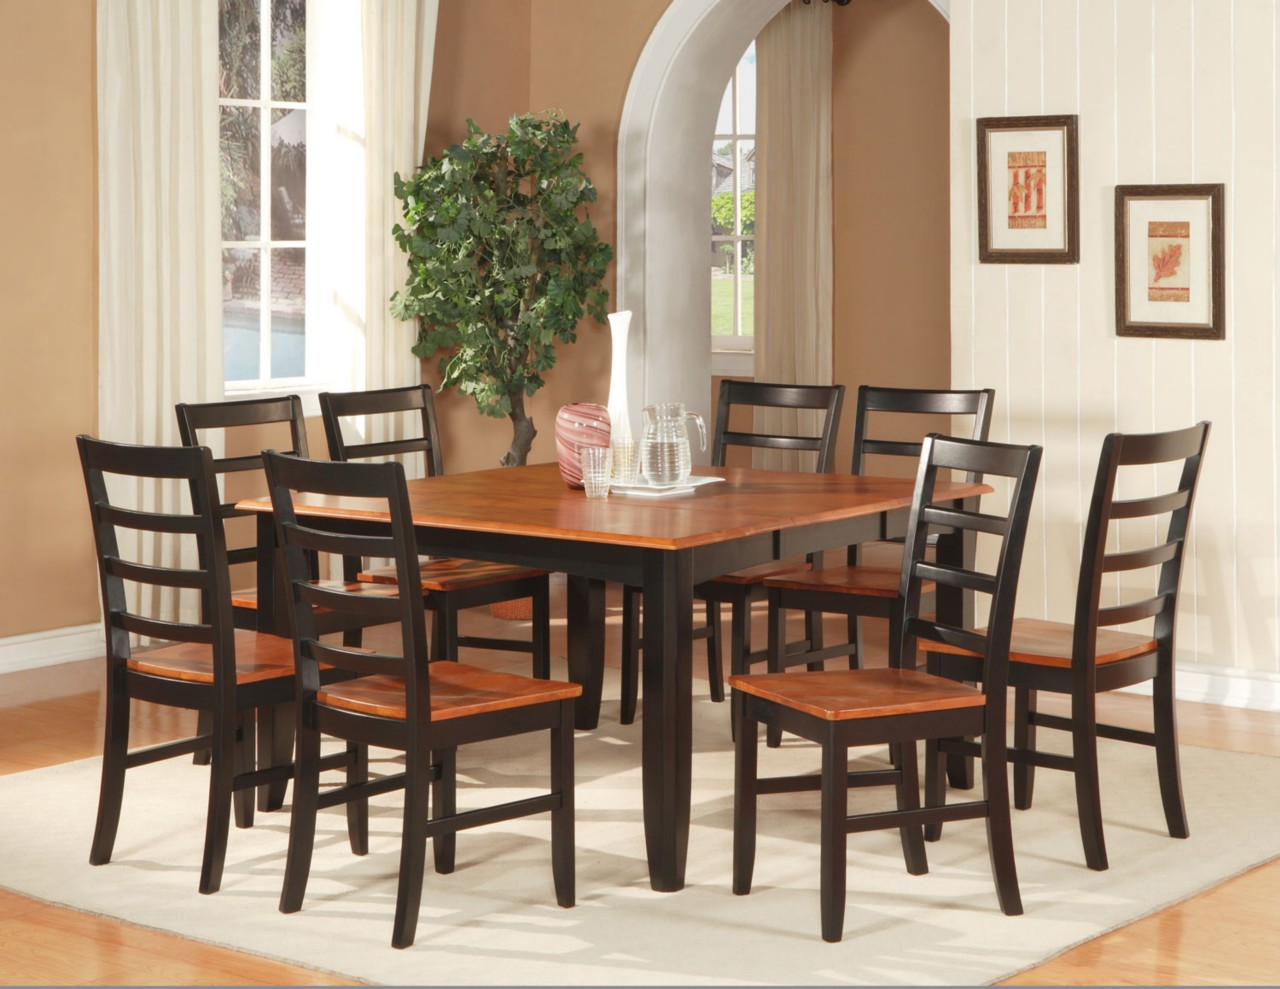 7 PC SQUARE DINETTE DINING ROOM SET TABLE WITH 6 WOOD SEAT